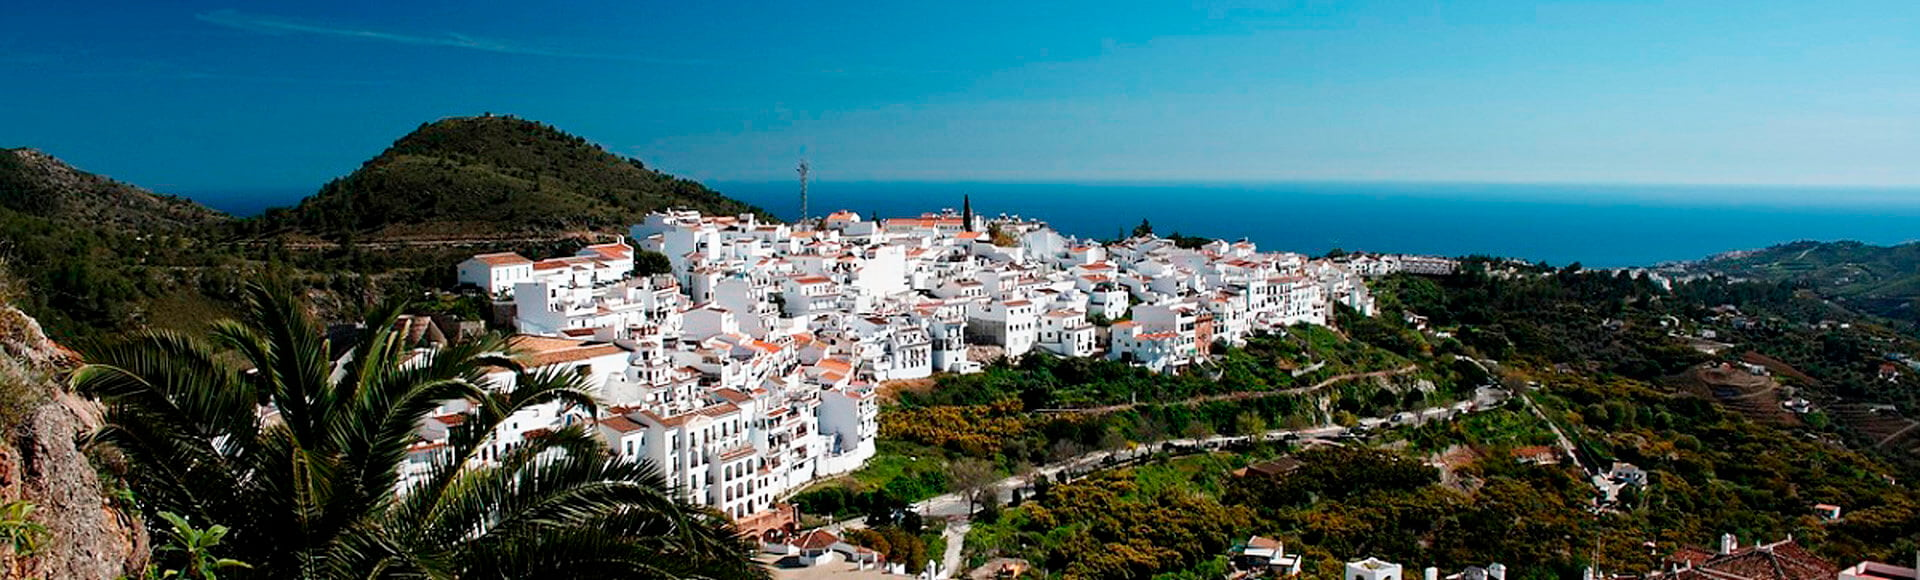 Axarquia, the beautiful Andalusian landscapes